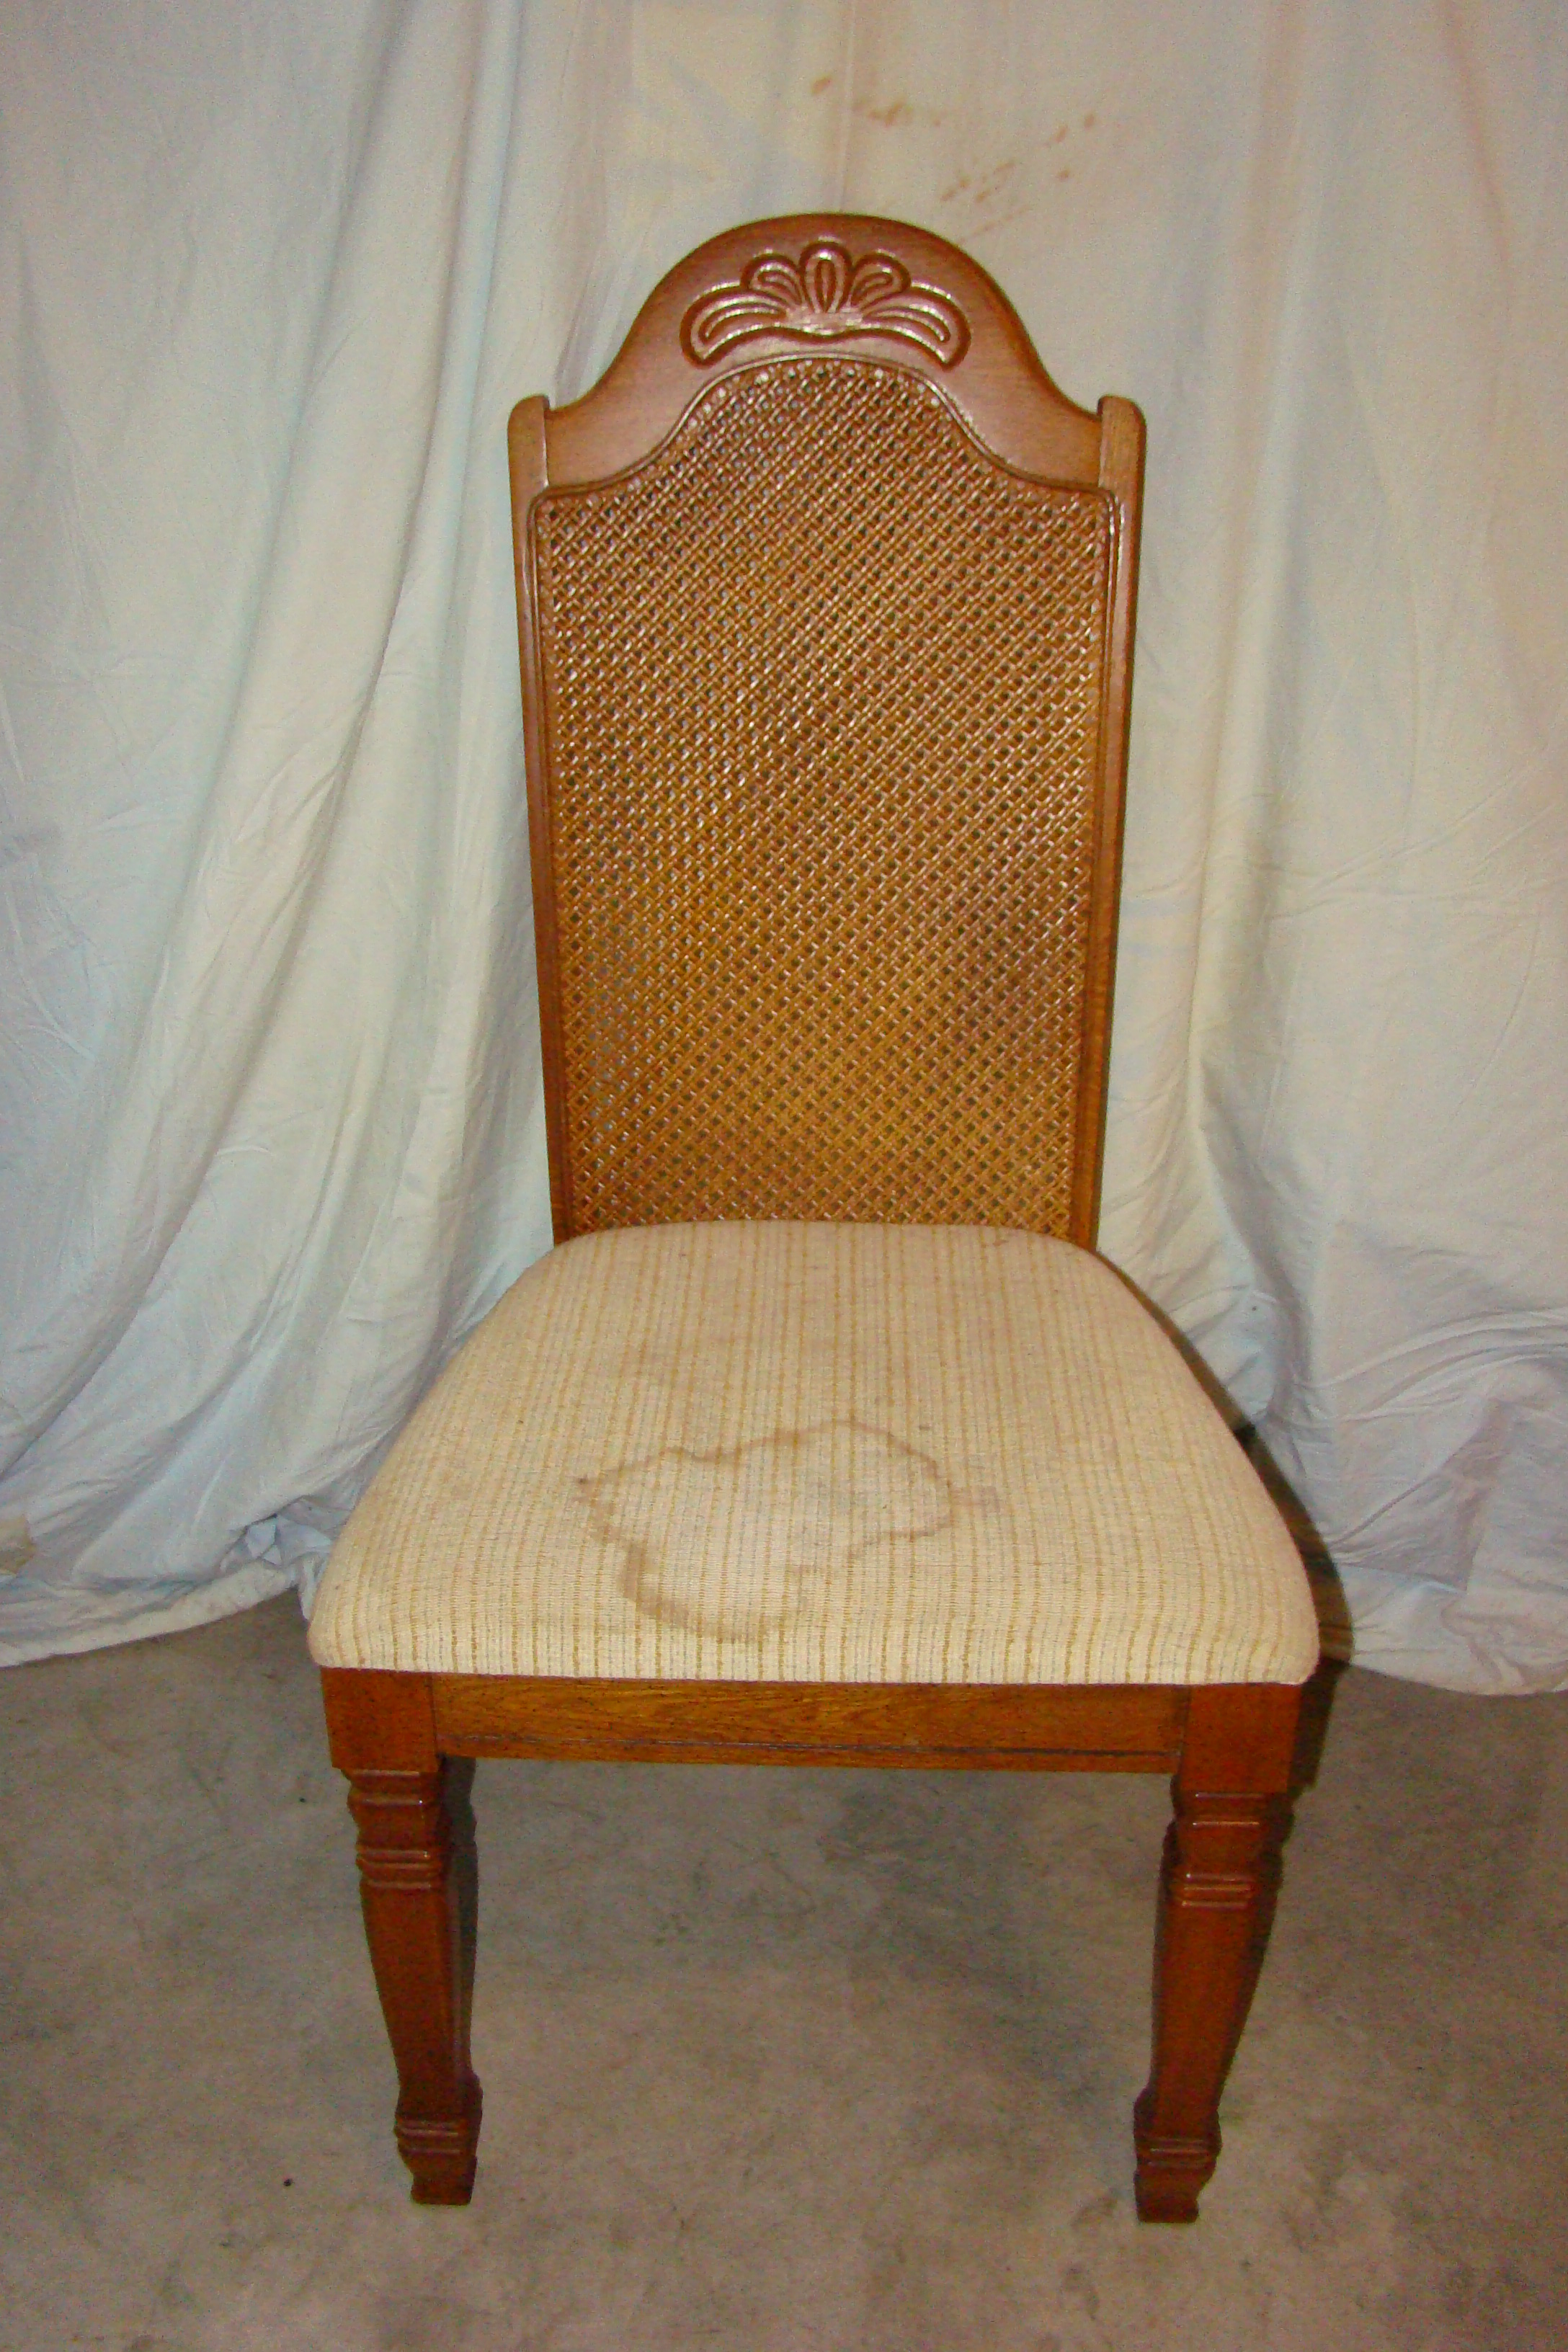 Antique Wicker Chairs Antique European Set Of 4 Wicker Back Chairs For Sale